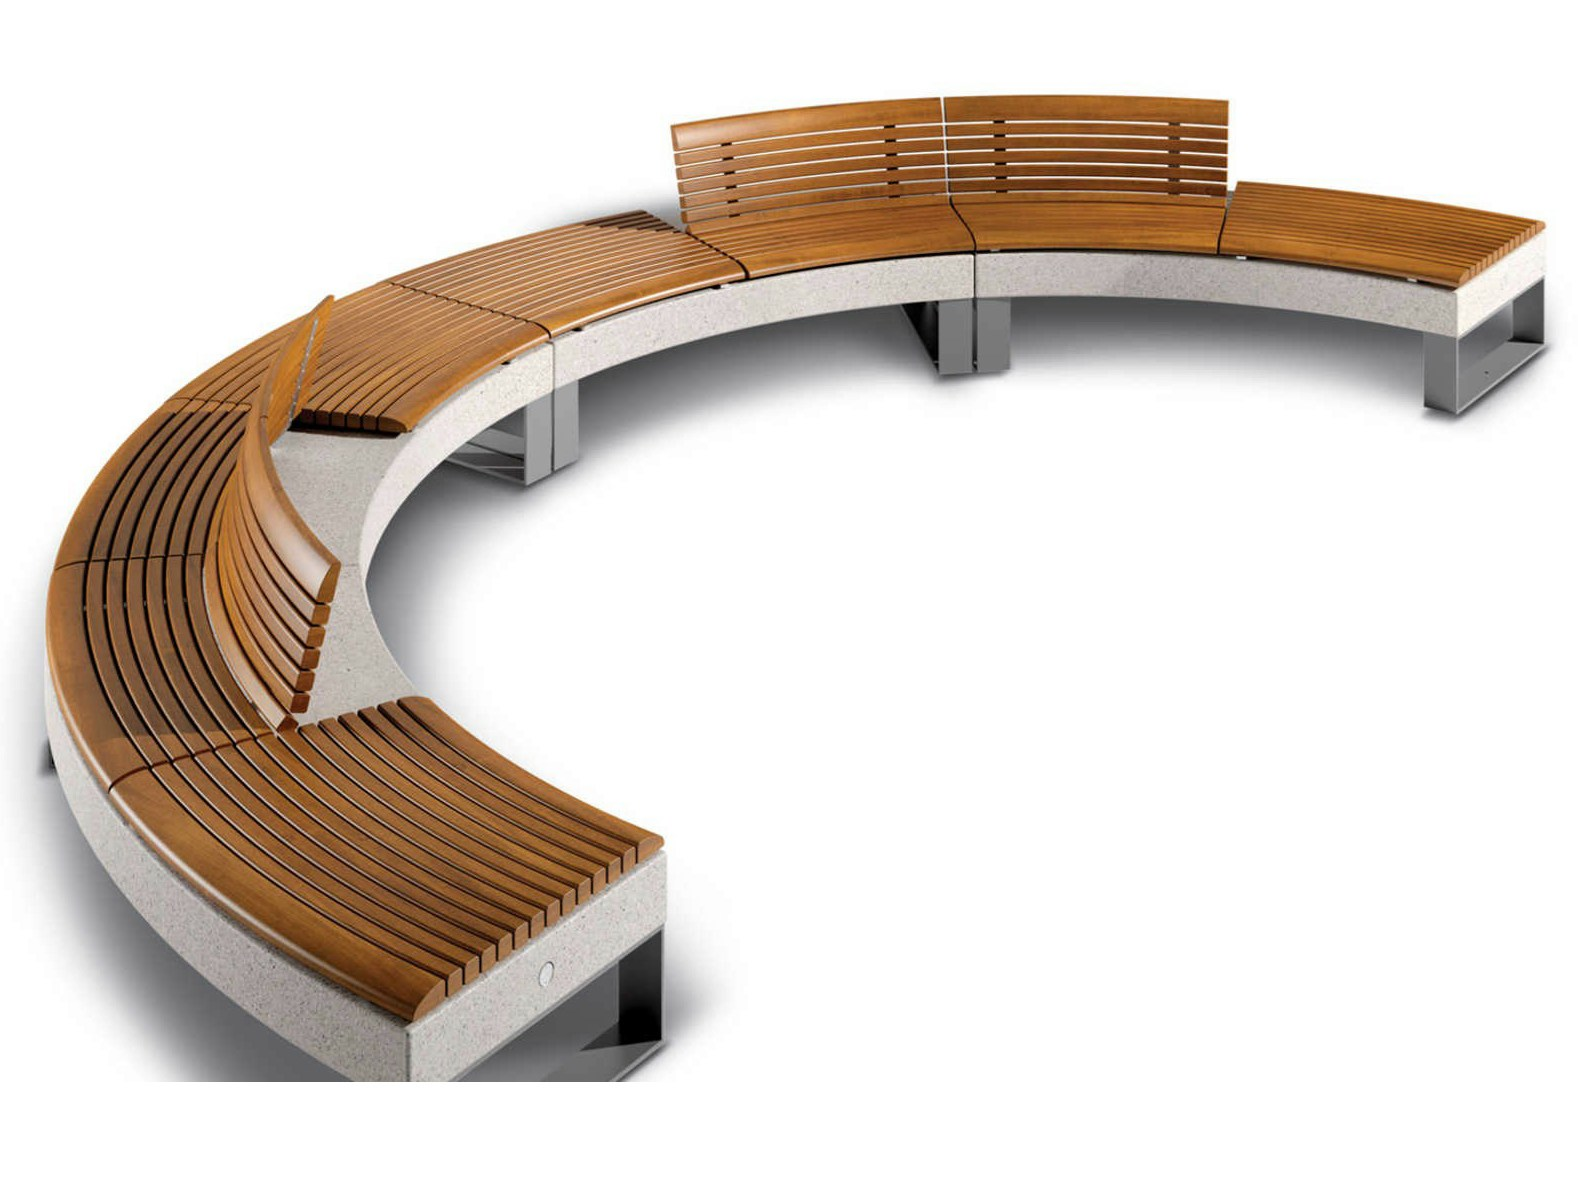 sectional curved modular bench diamante by metalco design michele slaviero